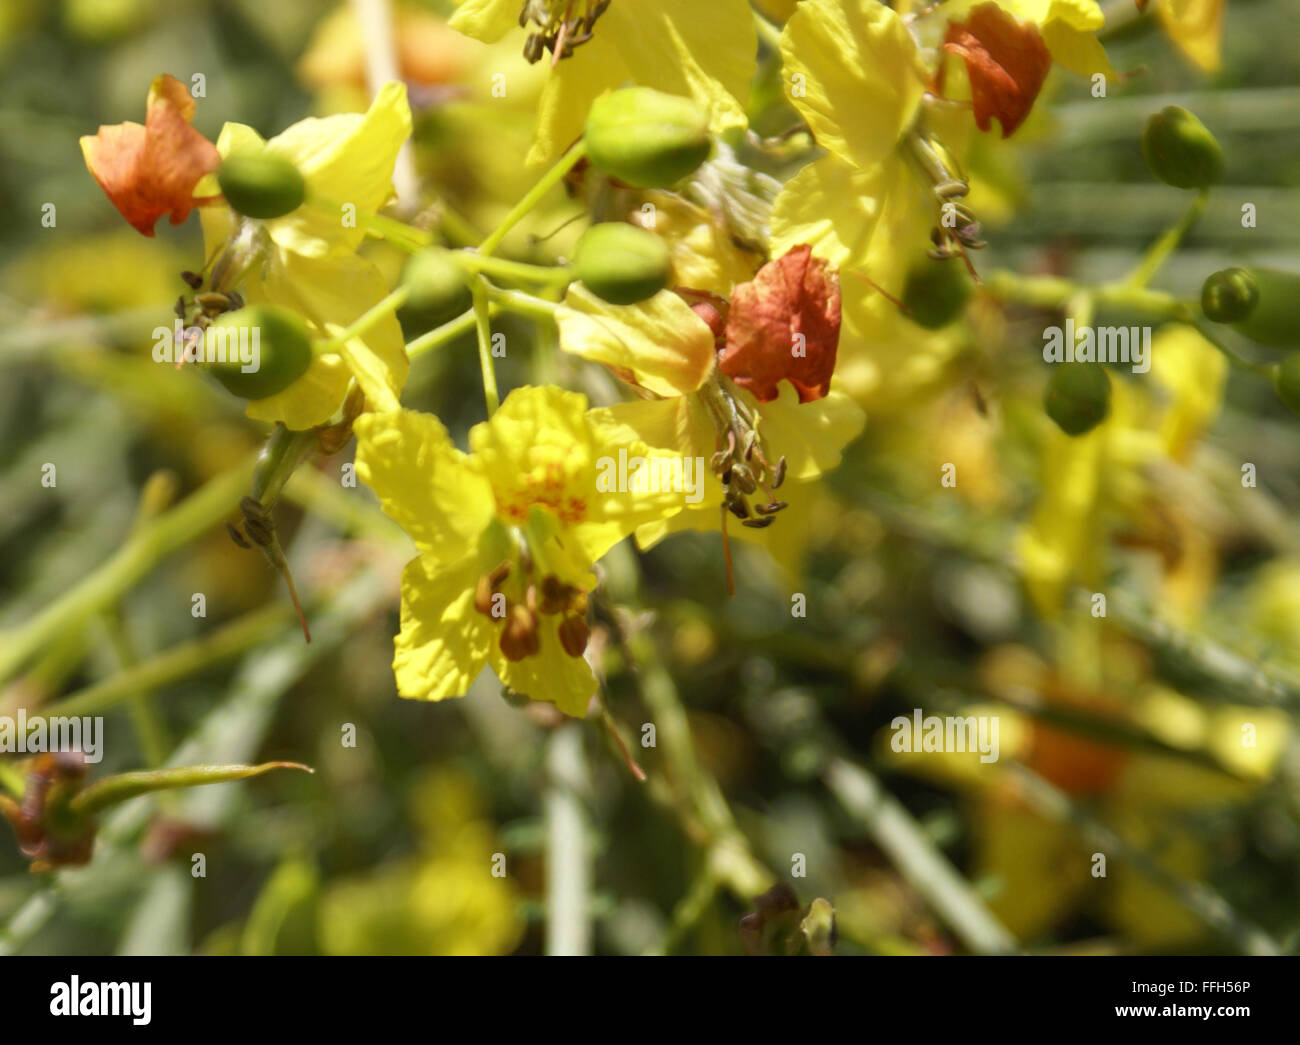 Spiny Shrub Stock Photos Spiny Shrub Stock Images Alamy